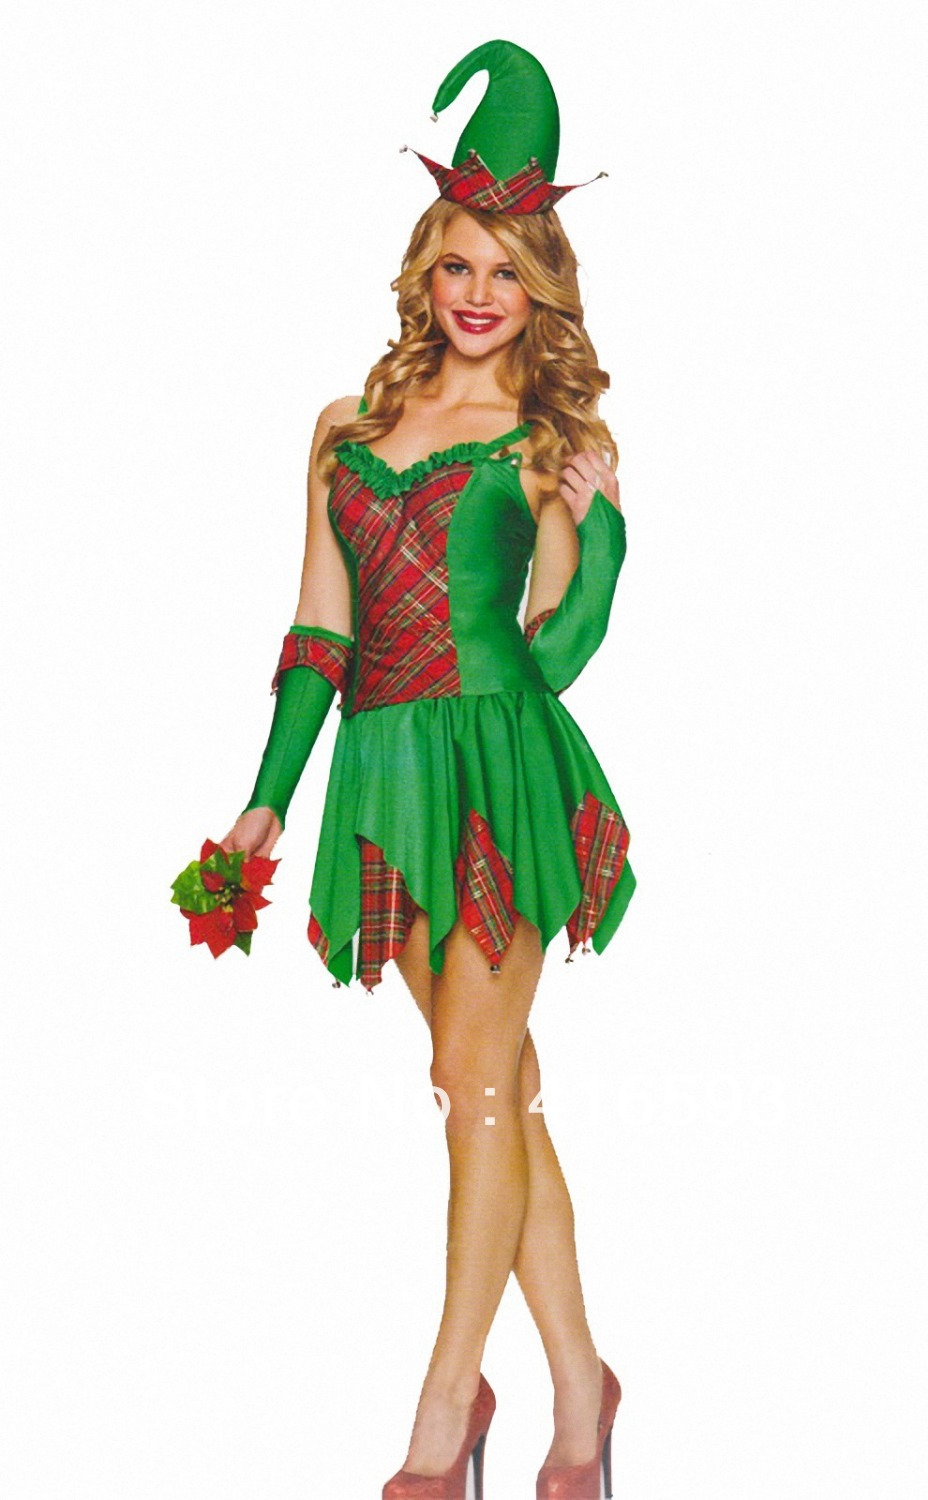 2013 New Sexy Adult Christmas Clown Costume For Women,Woman Green Halloween Costumes -3665